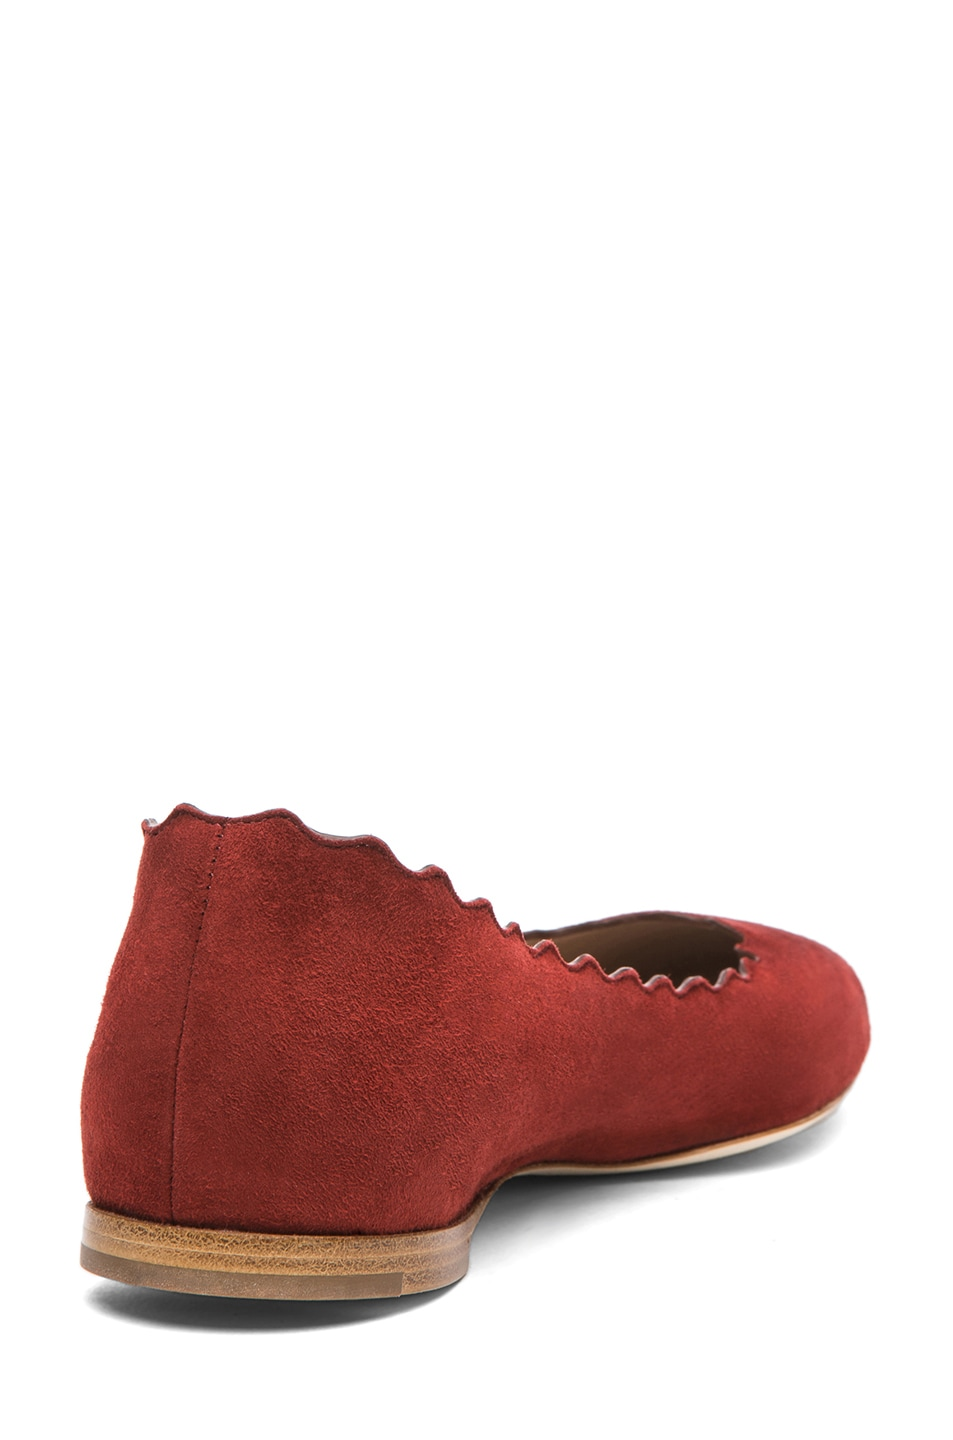 Image 3 of Chloe Suede Scalloped Flats in Red Moroccan Ochre